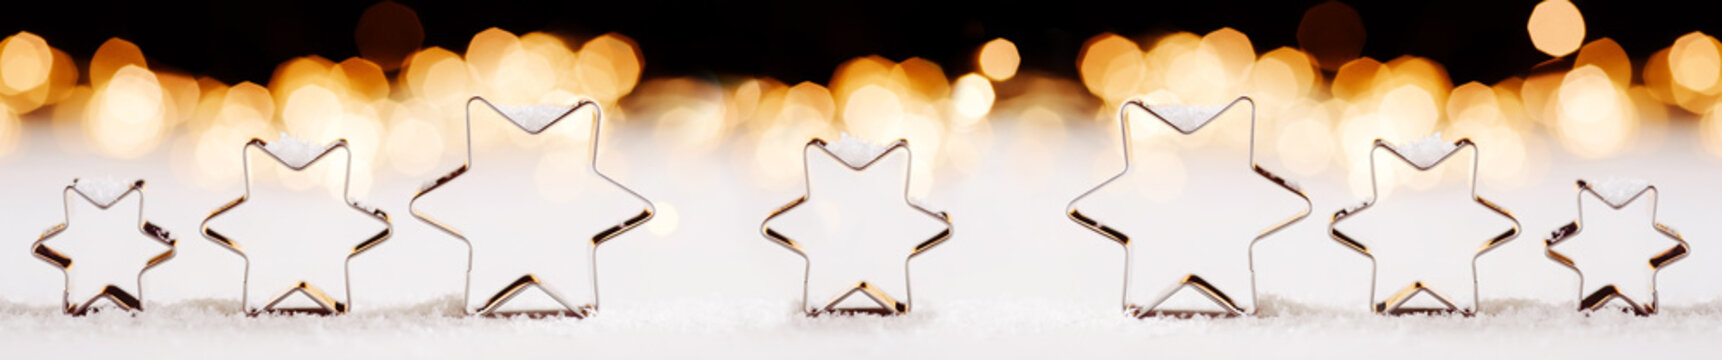 Christmas themed banner/ header with star shaped cookie cutters and twinkling lights